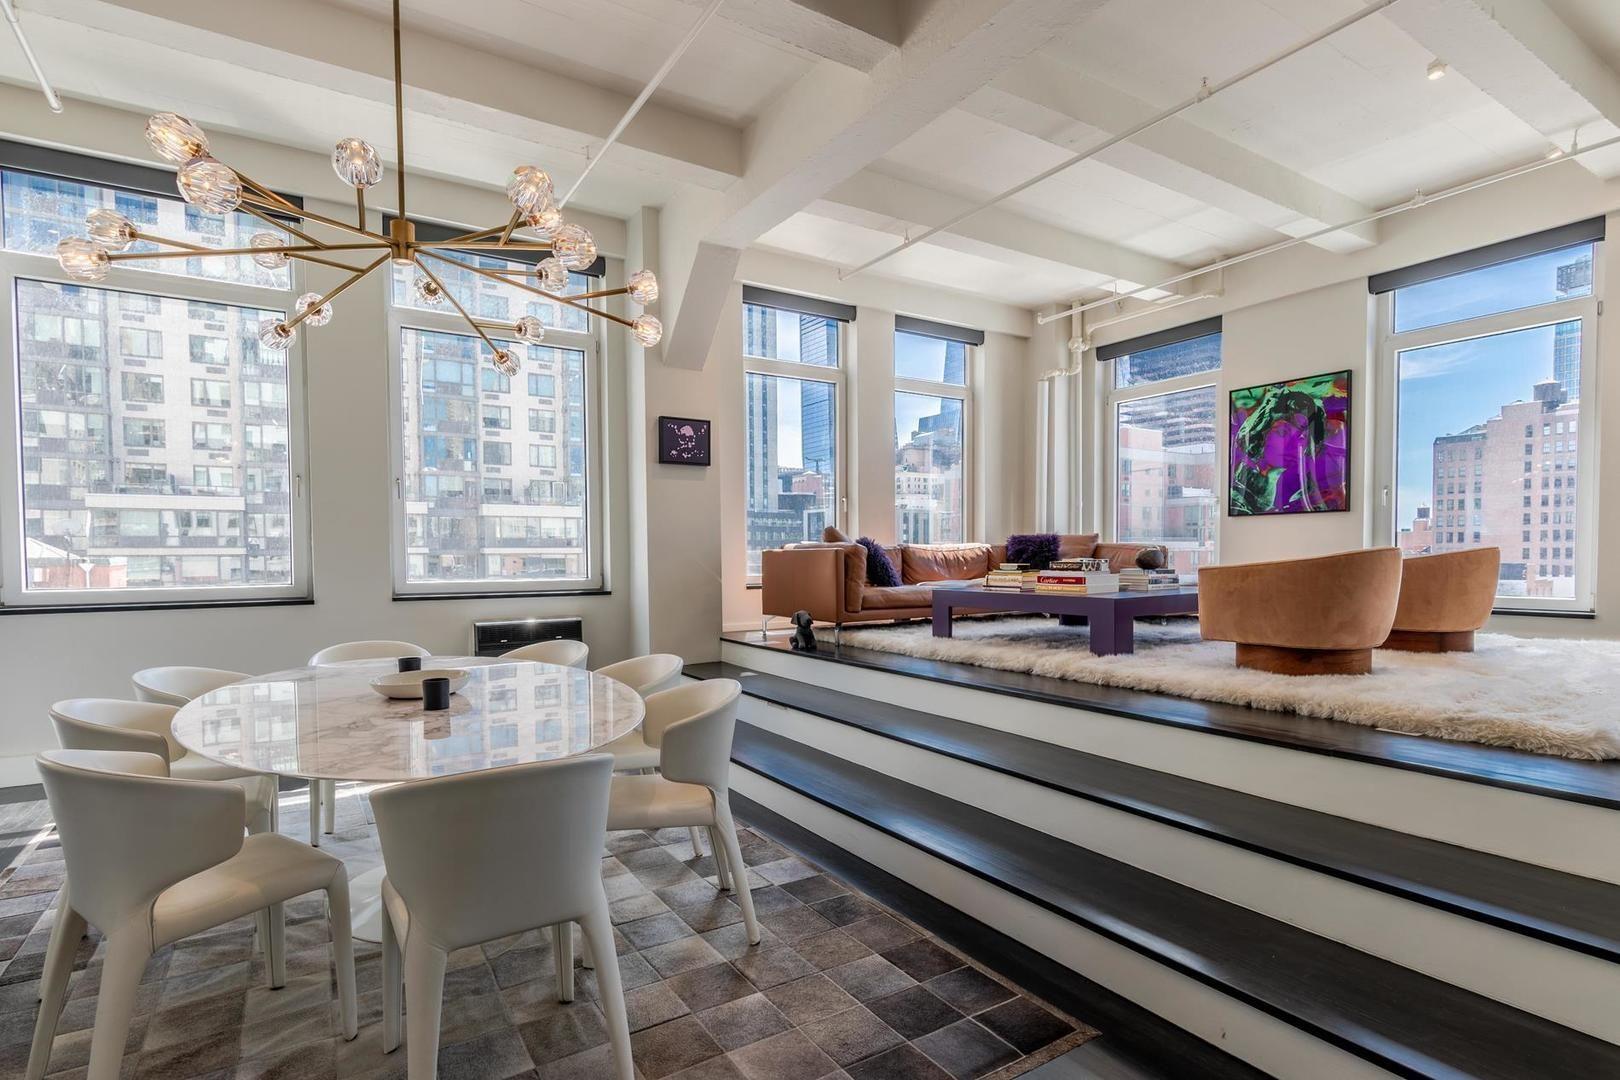 Apartment for sale at 348 West 38th Street, Apt 7-A